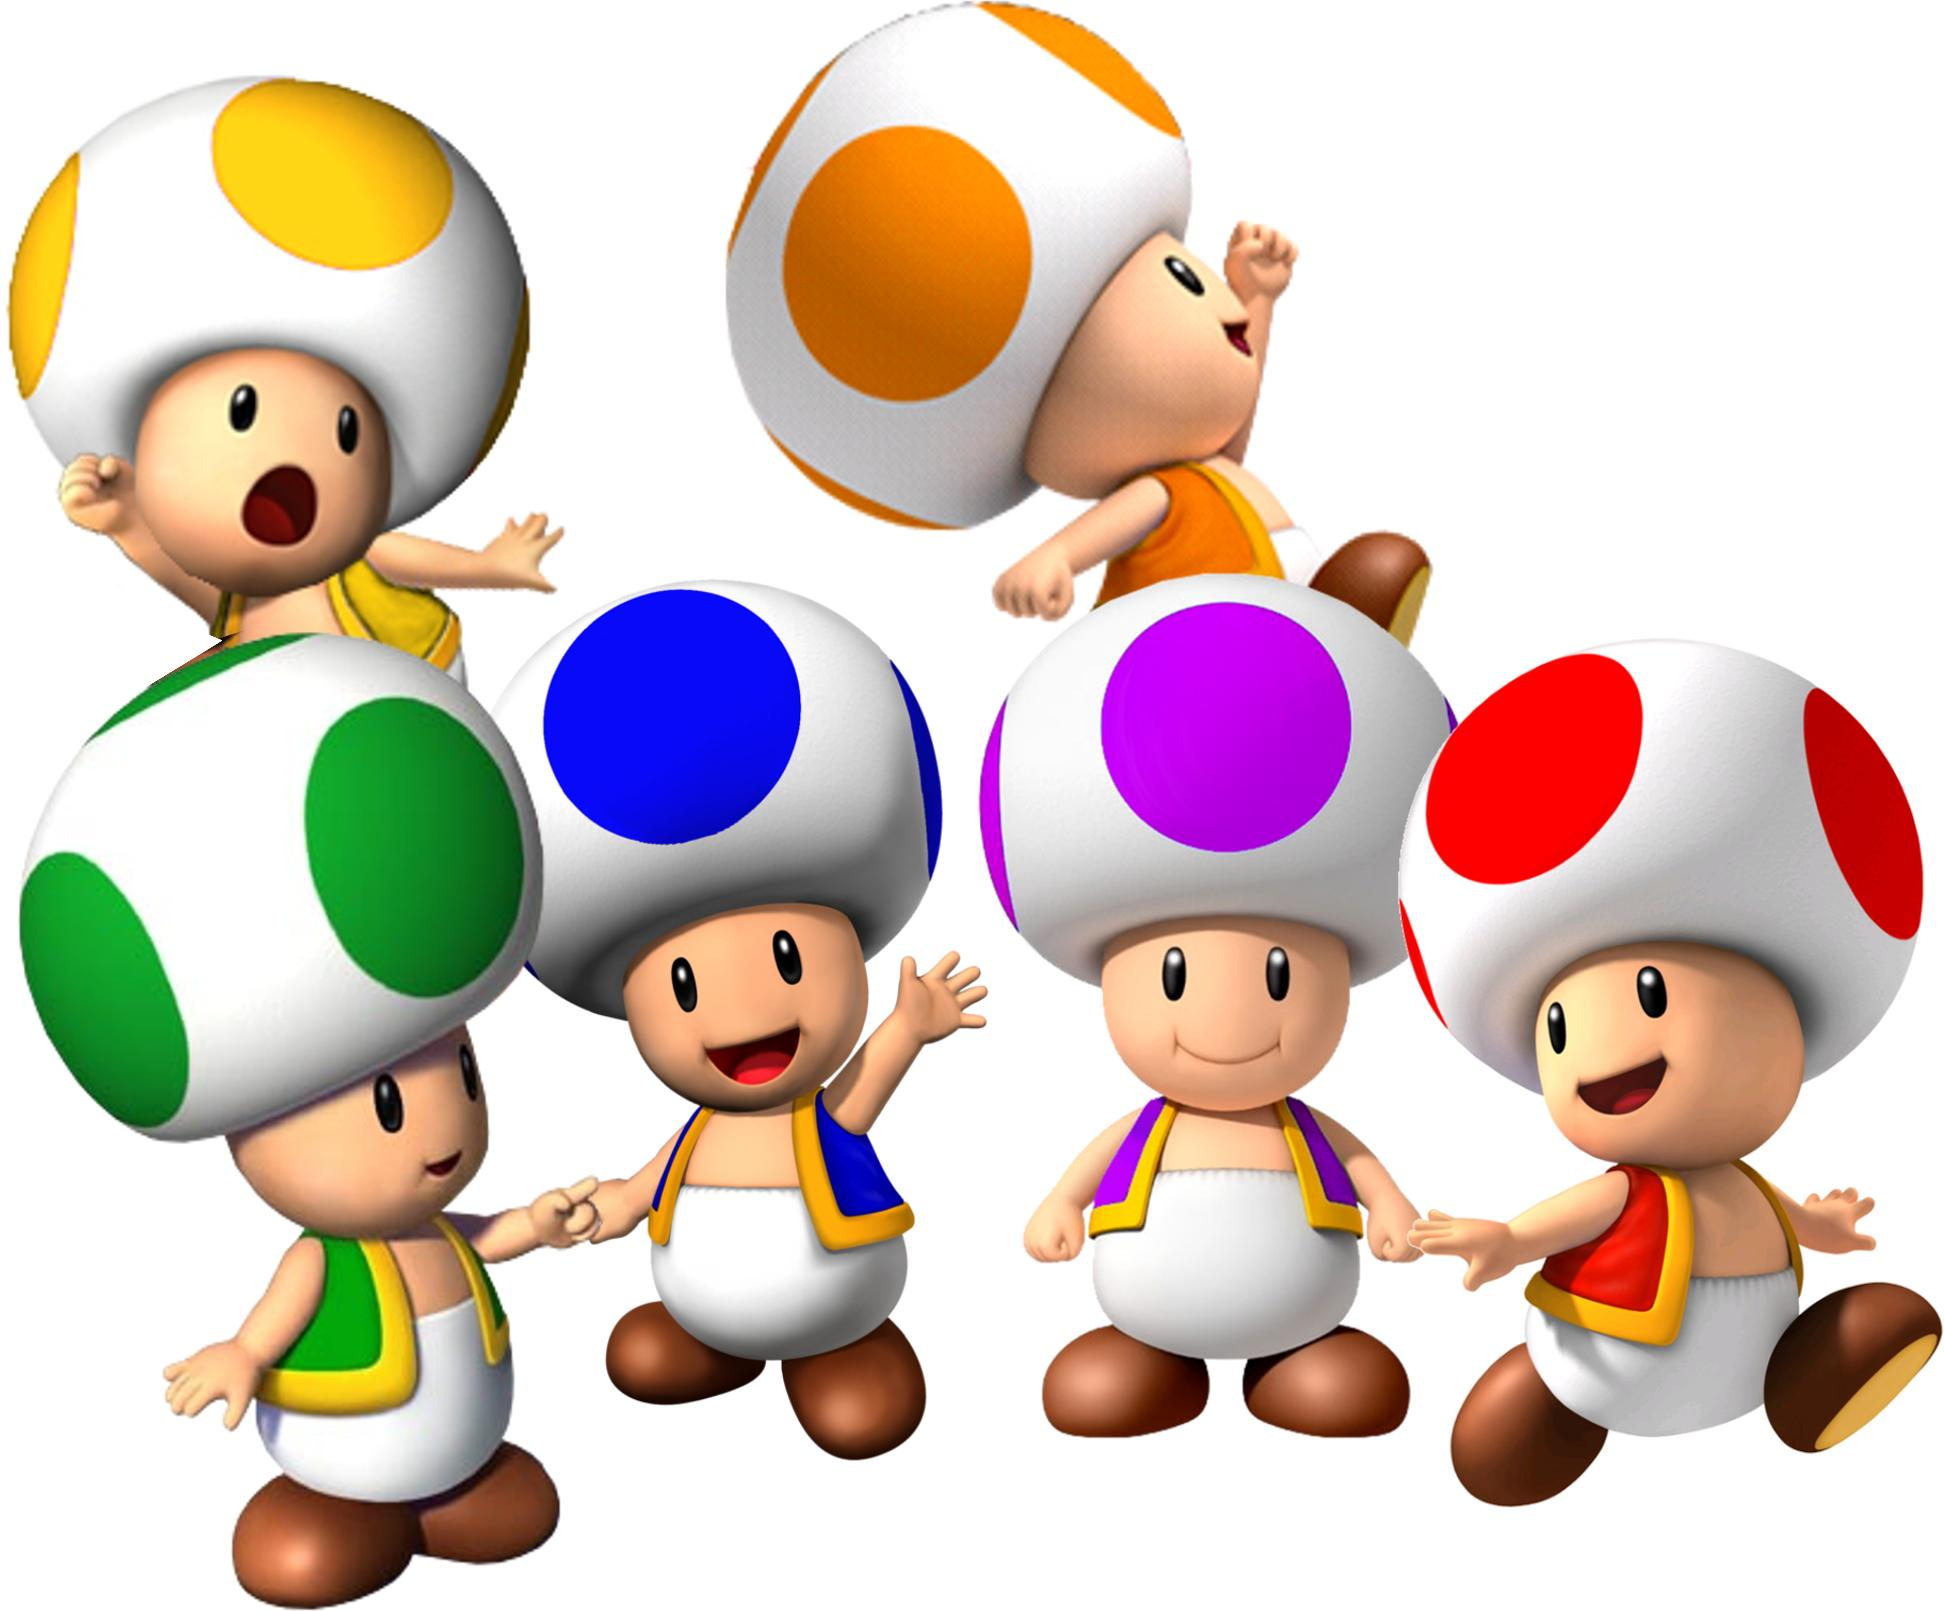 HD Wii Wallpapers, Mario Kart, Super Mario Galaxy 2, Toad